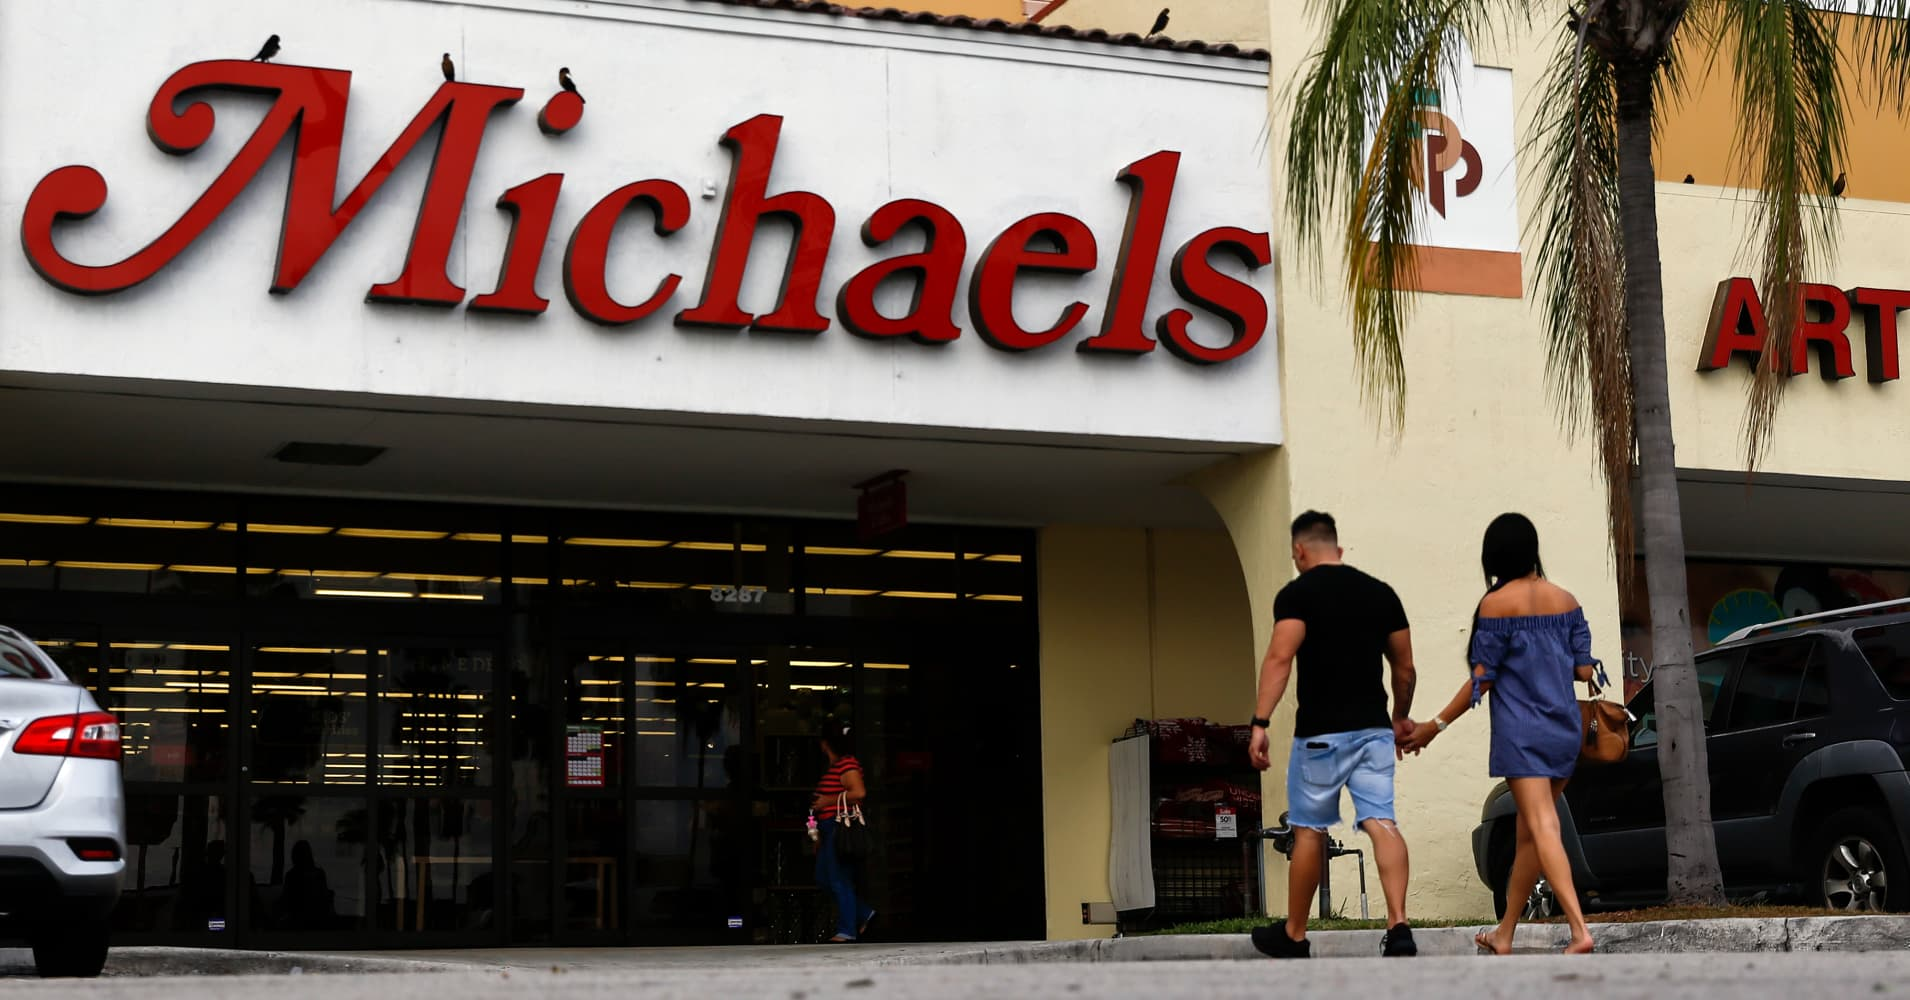 michaels expands kids 39 section to win sales toys r us left